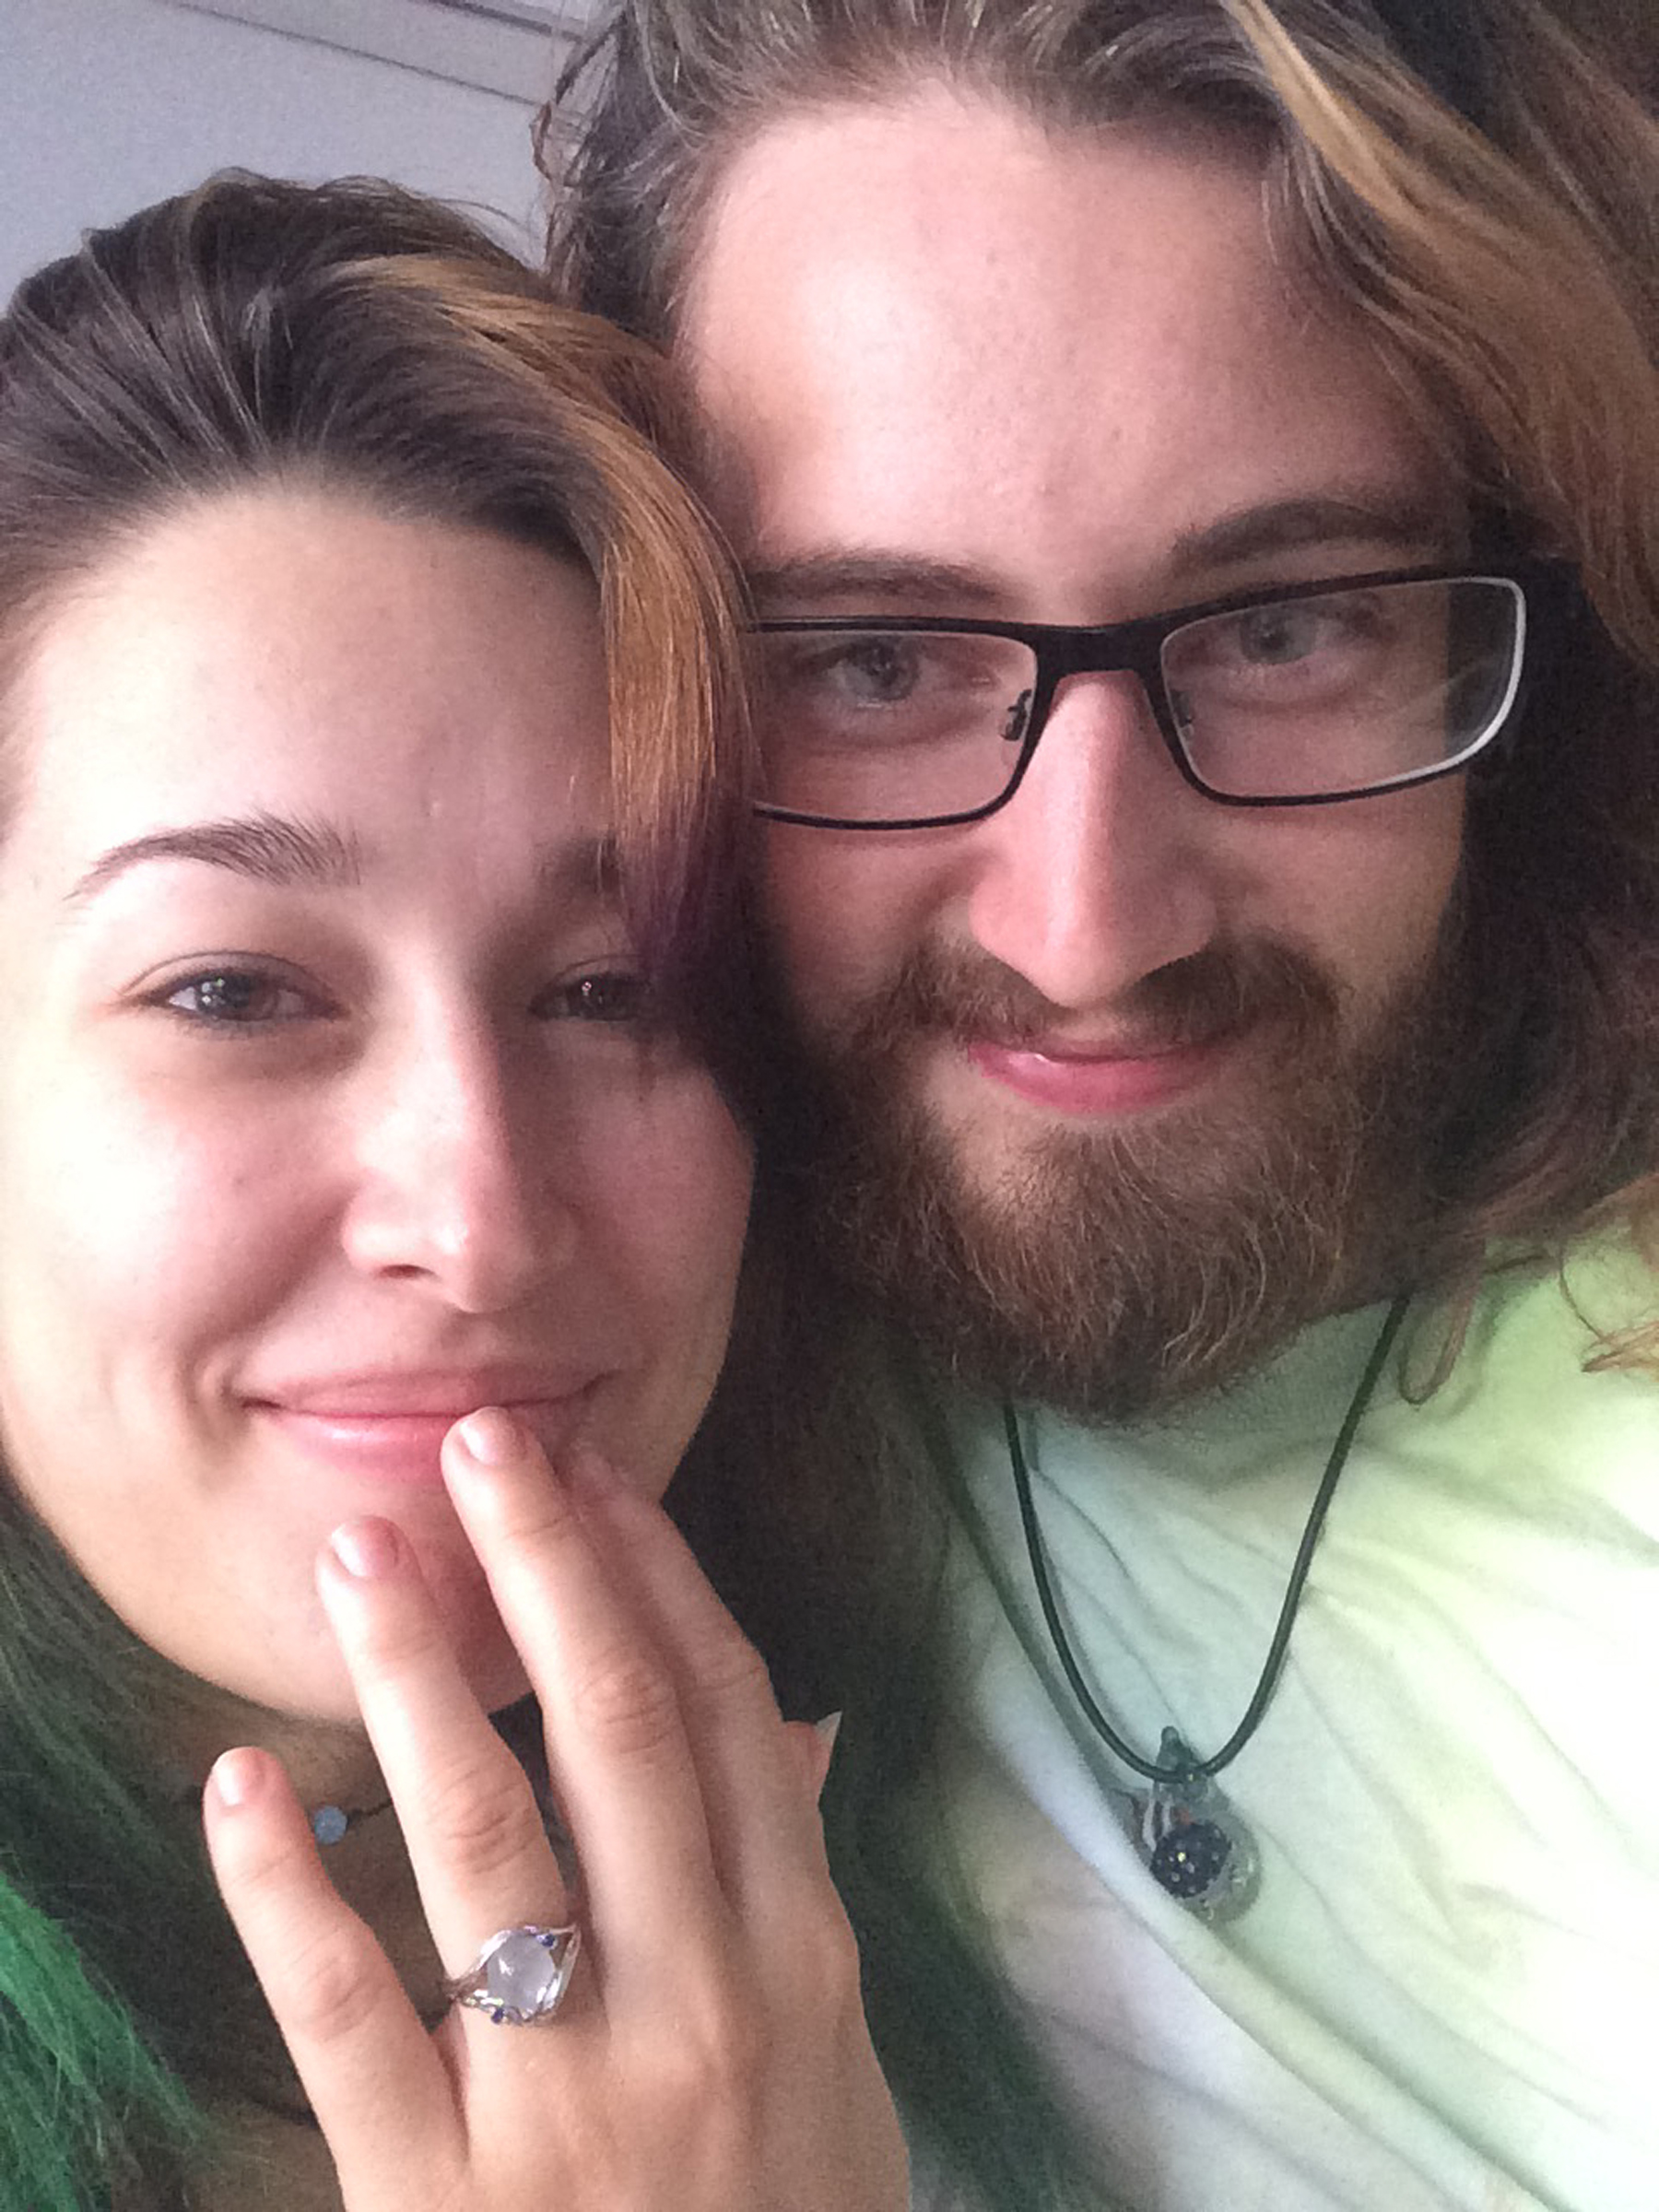 Alice and Michael together, showing off their custom Elvish Moonstone Engagement Ring by Takayas